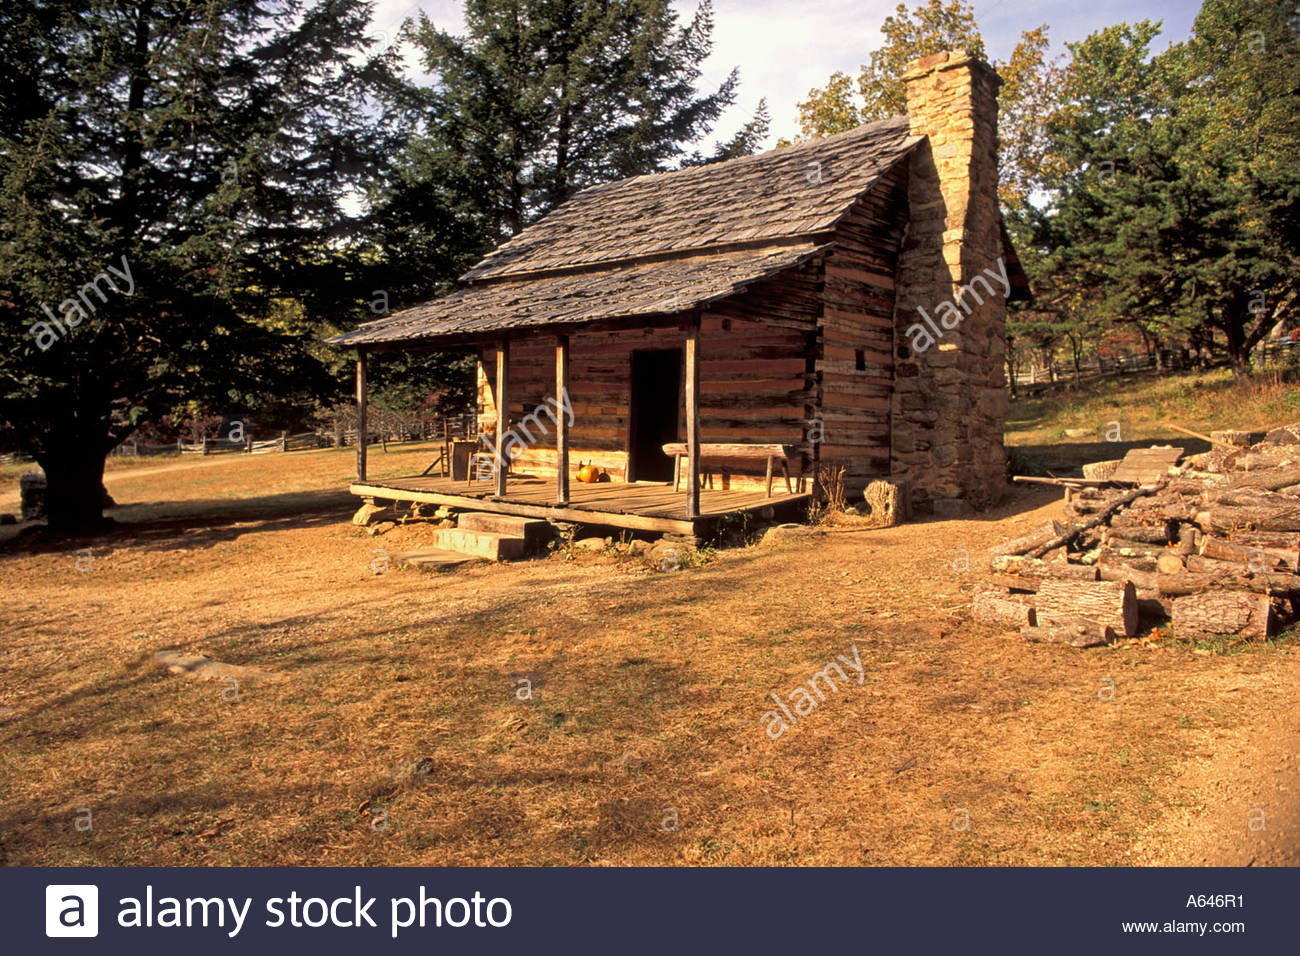 Marvelous photograph of Squared Timber Log Cabin With Split Shake Roof At Humpback Rocks On  with #B27419 color and 1300x956 pixels